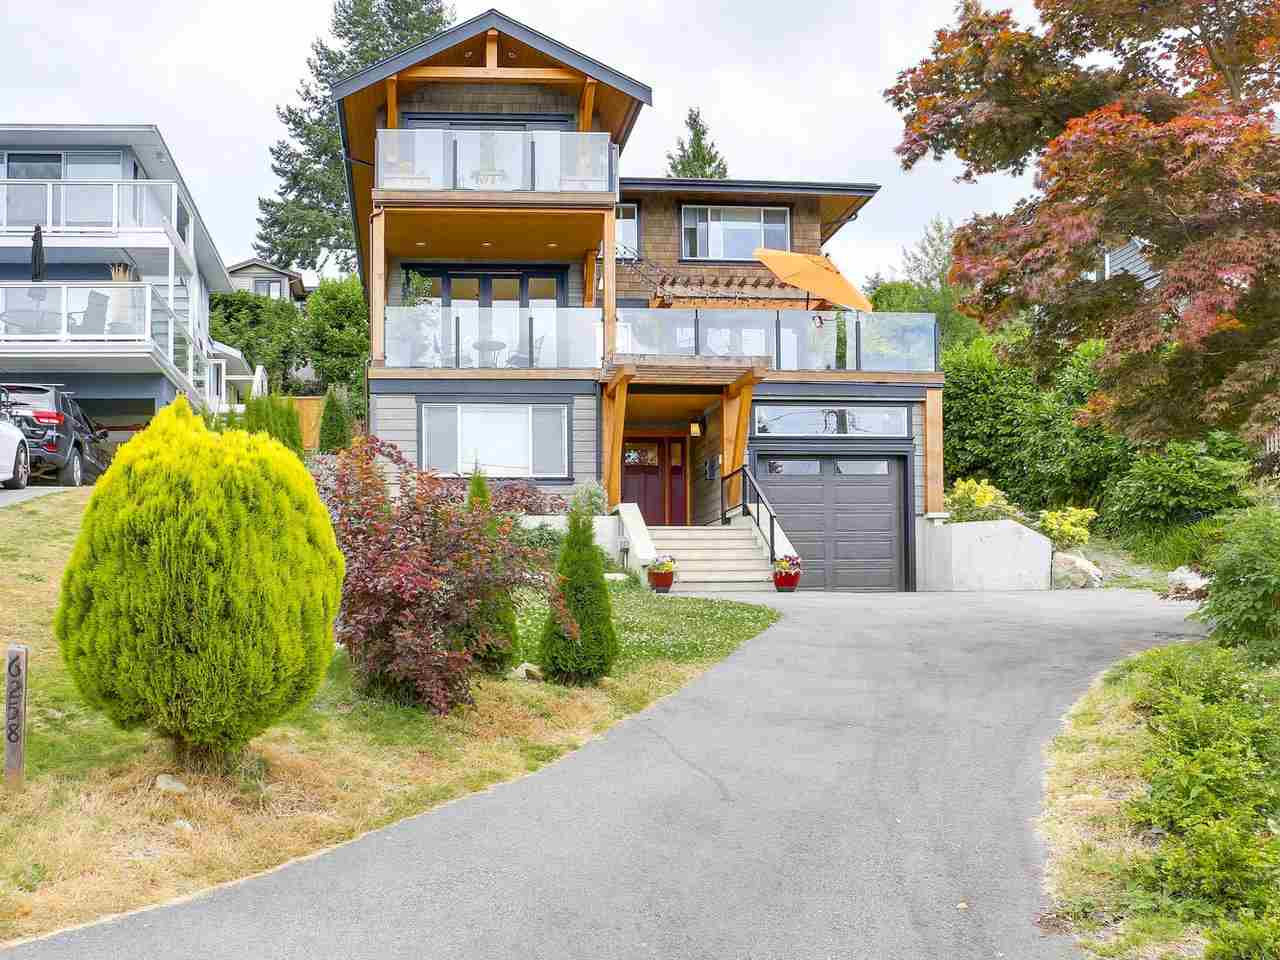 Custom built for the current owners, this home offers the best of everything. Ocean & island views, sunsets off the deck, an open concept main floor & it's located on a quiet cul-de-sac. Completed in 2015 this home is situated at the top of a gently raised lot & looks across to Whytecliff Park and Batchelor Bay. Enter the oversized foyer & you'll find a private, home office, family room, the laundry room & a full bathroom. Upstairs is the heart of the home. A beautiful kitchen opens to the dining area. Around the corner is a large living room & it's all tied together by a huge sun deck that catches the rays until the end of the day. Upstairs is a beautiful master with a large, walk-in closet & spa-like ensuite. The 2 additional bedrooms share a large bath. Walk to everything from this home